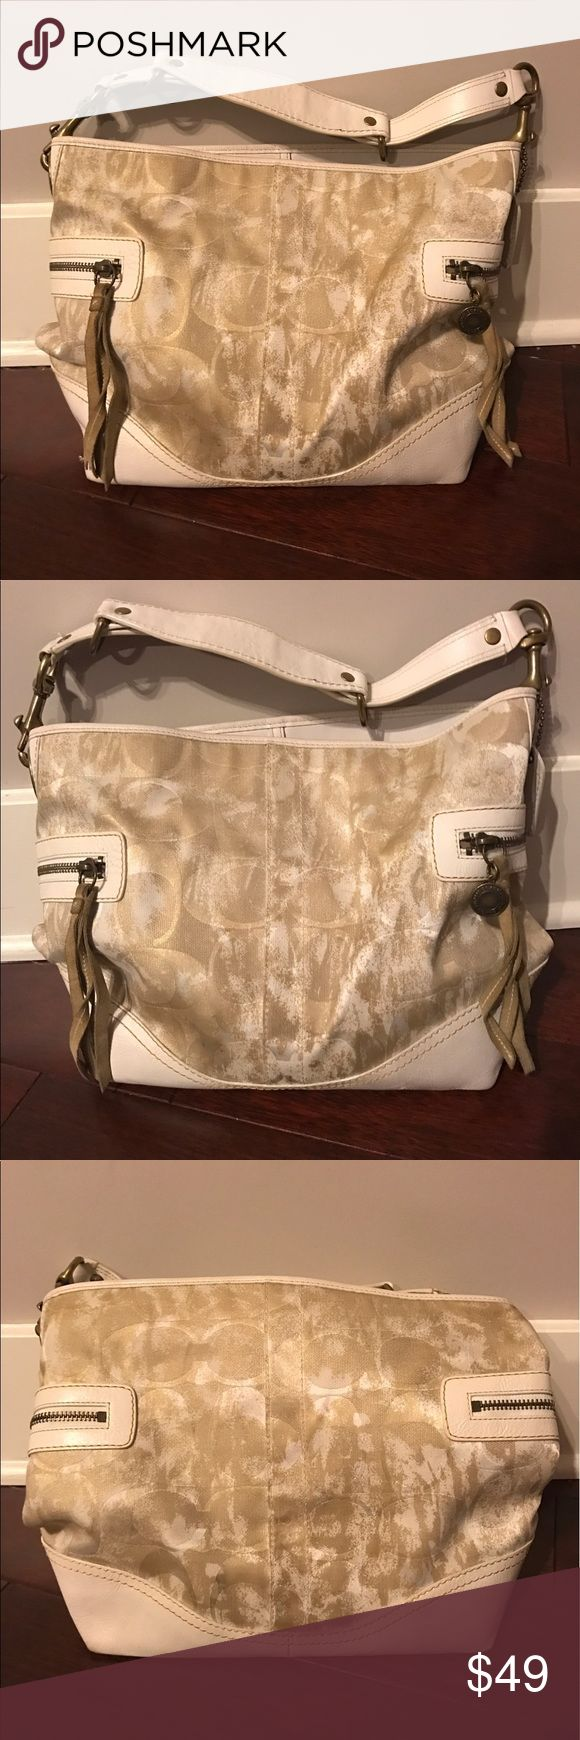 Coach Signature Hobo Bag Gold with Coach signature print. White leather accents and zipper and tassel details on each side. Shoulder strap and hook closure. Zipper pocket inside with 2 additional pockets. Shows some minor signs of use and has some marks on bottom leather and corners but overall good condition. Coach Bags